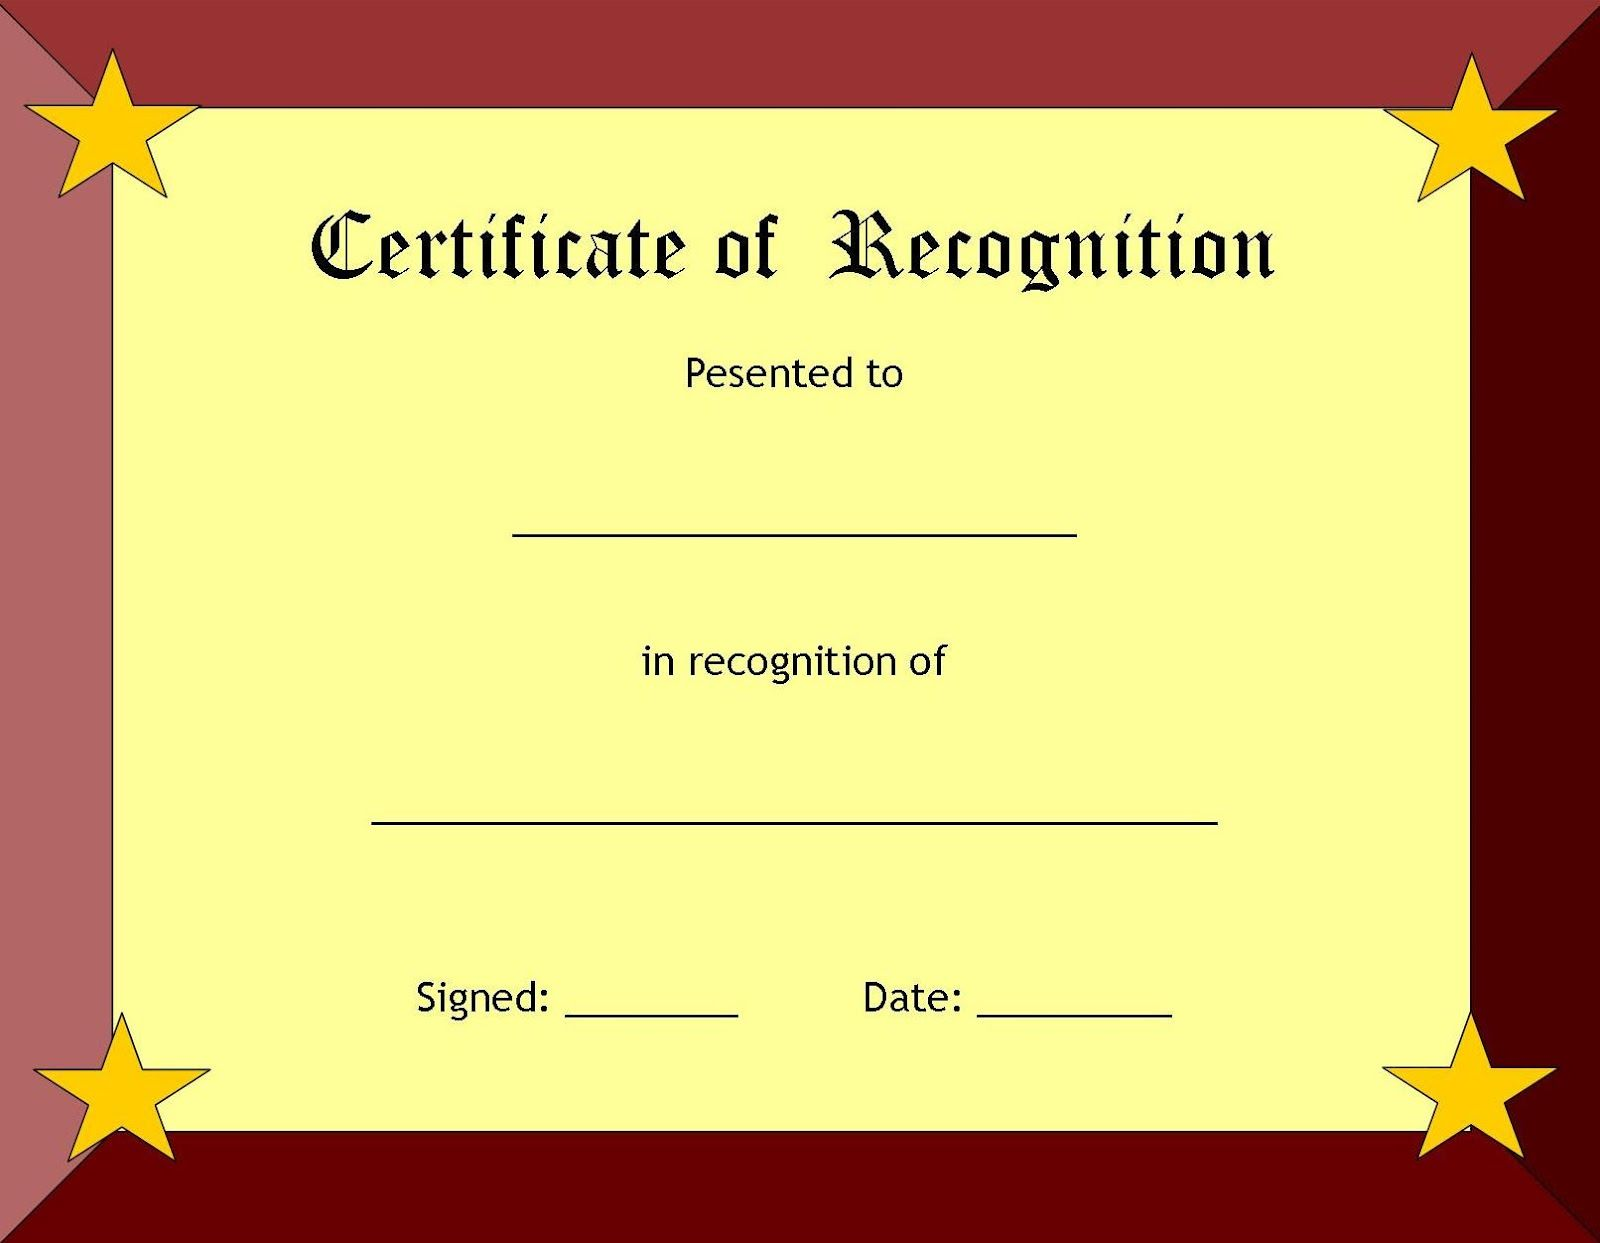 Certificate of recognition template prizegiving pinterest certificate of recognition template 1betcityfo Choice Image